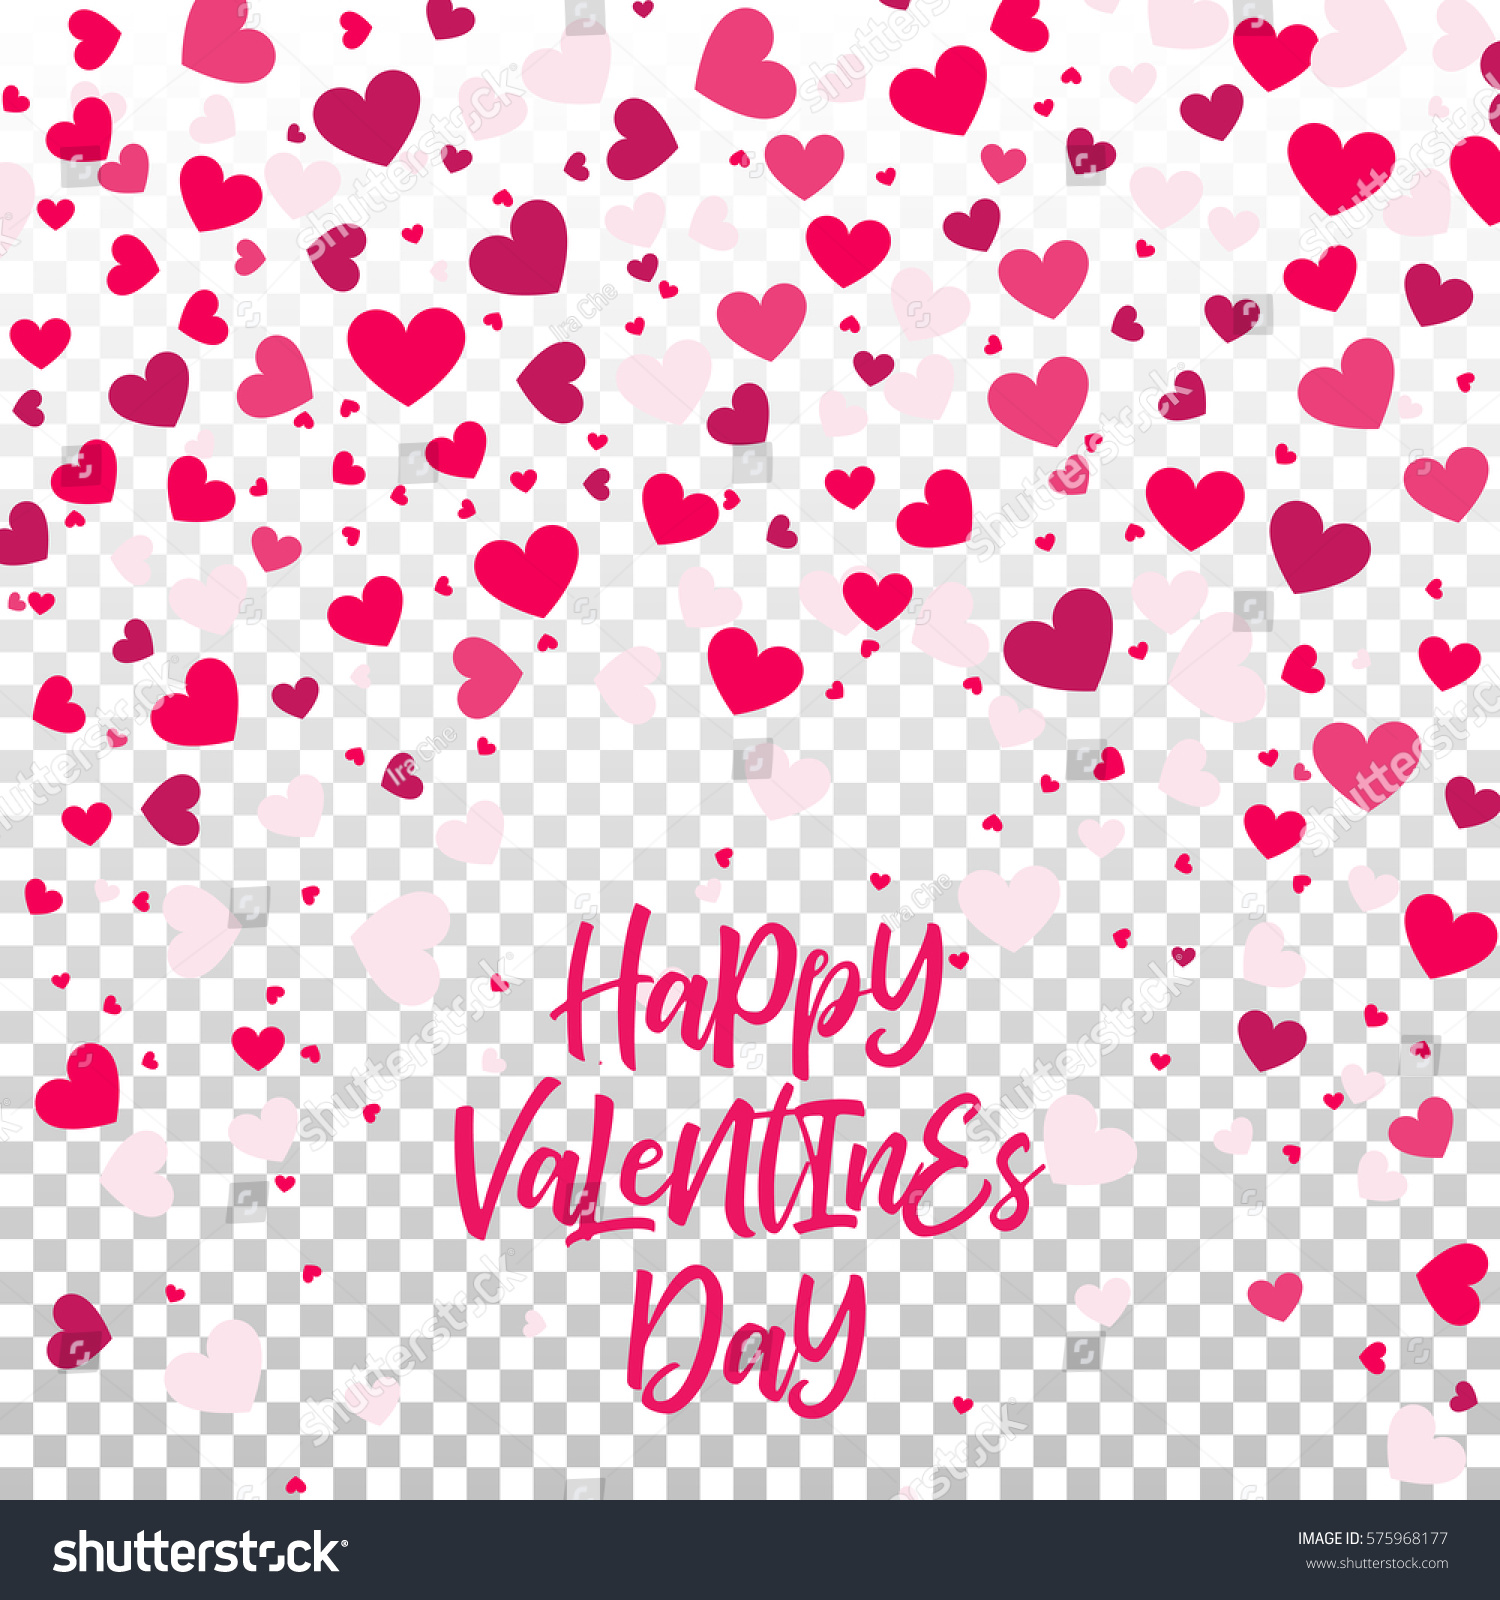 colorful background with heart confetti valentines day greeting